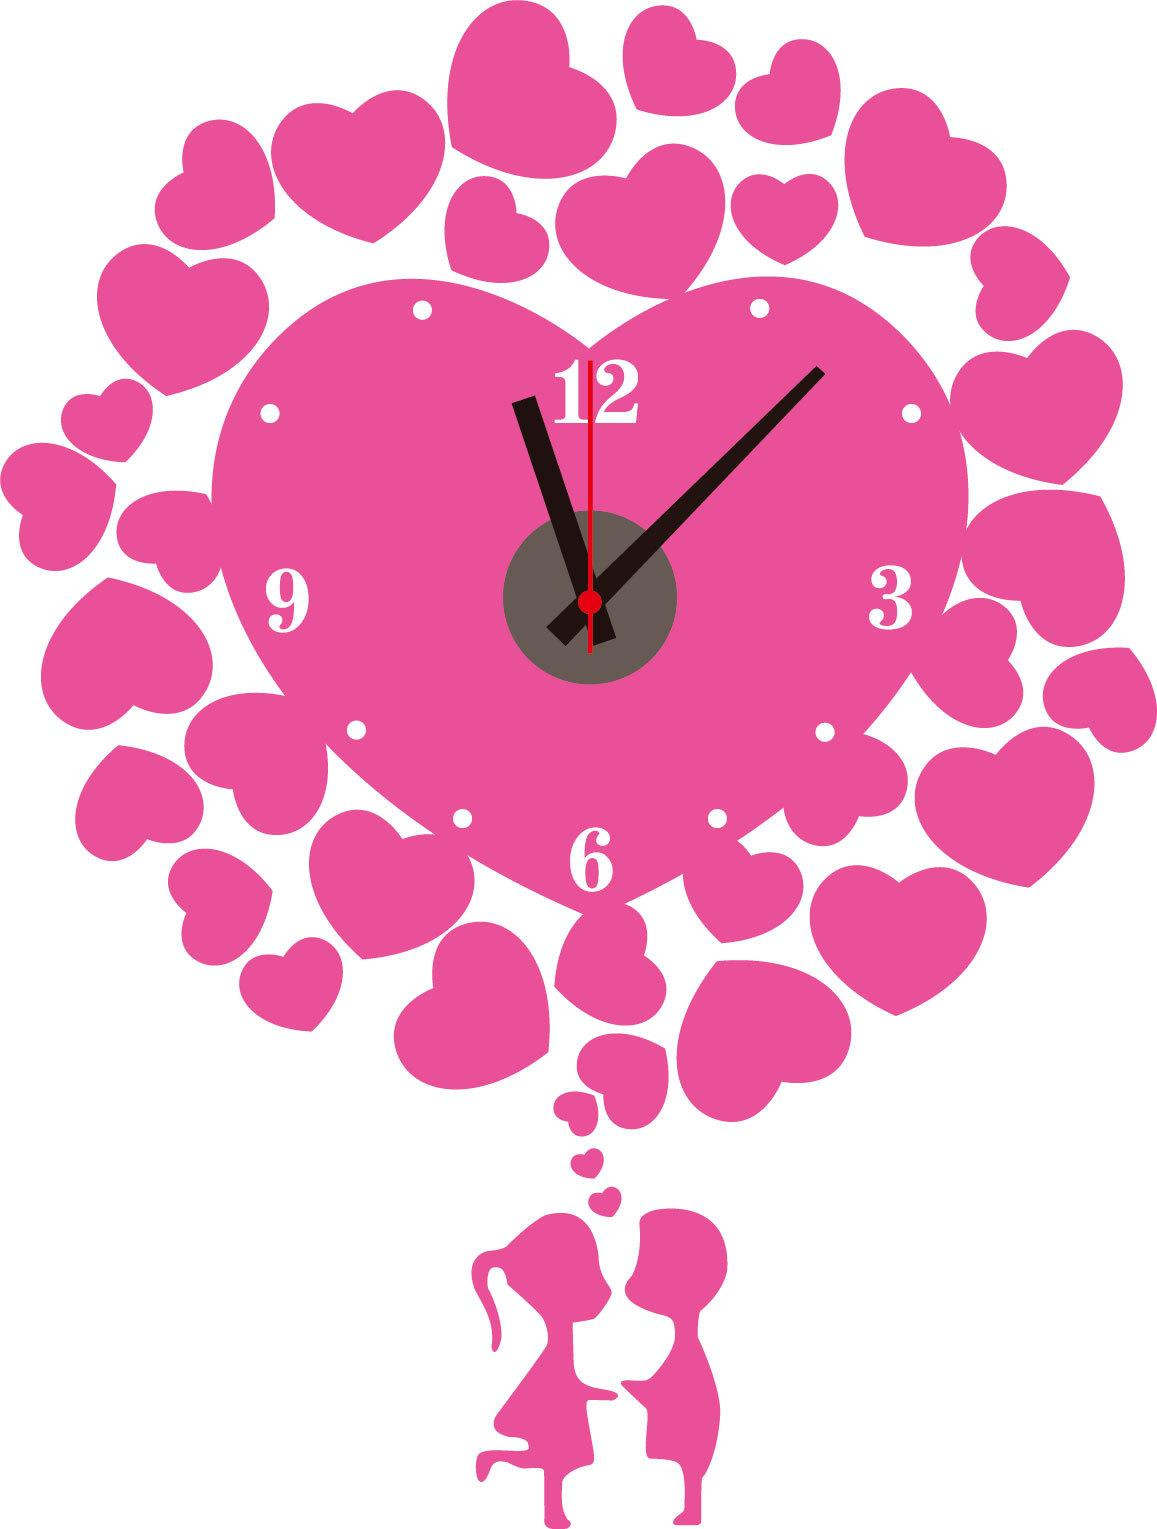 Pvc pink heart decorative wall clock sticker home decoration wall see larger image amipublicfo Image collections